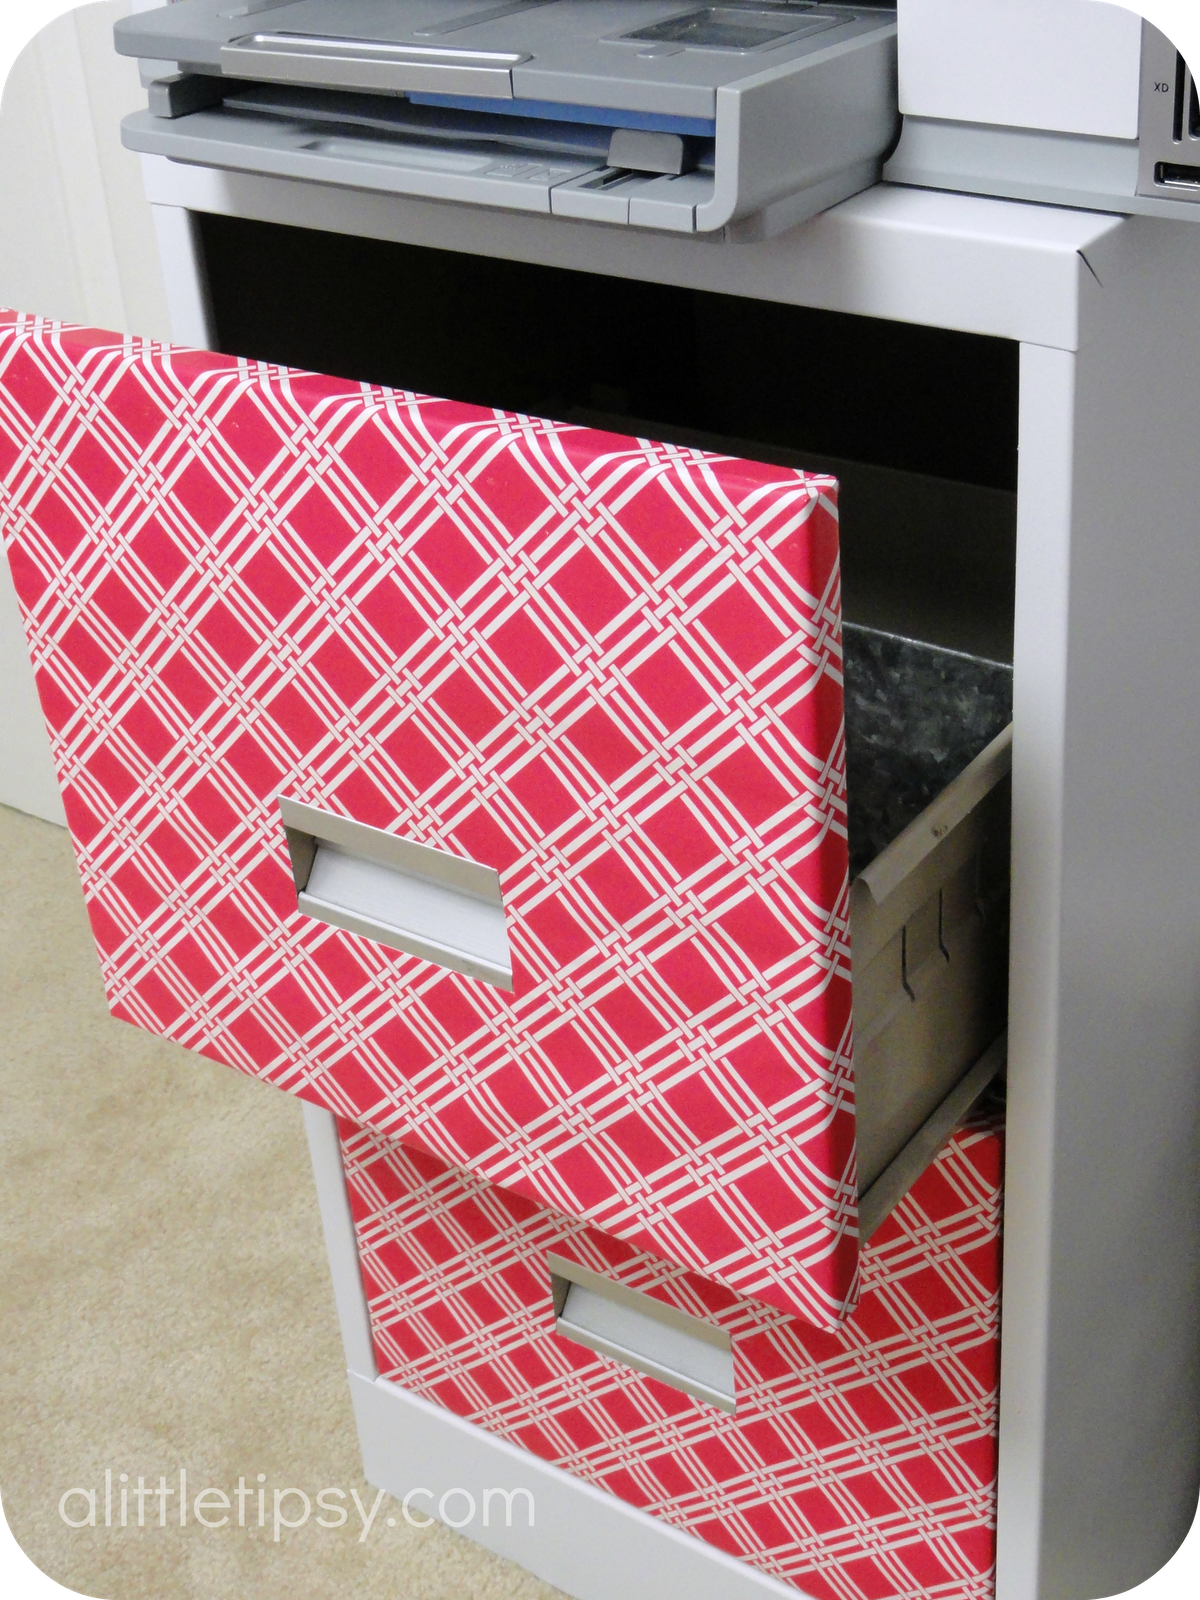 A-Little-Tipsy-File-Cabinet-Makeover-using-wrapping-paper-Easy-to-change-the-print-when-tir-wallpaper-wp5602675